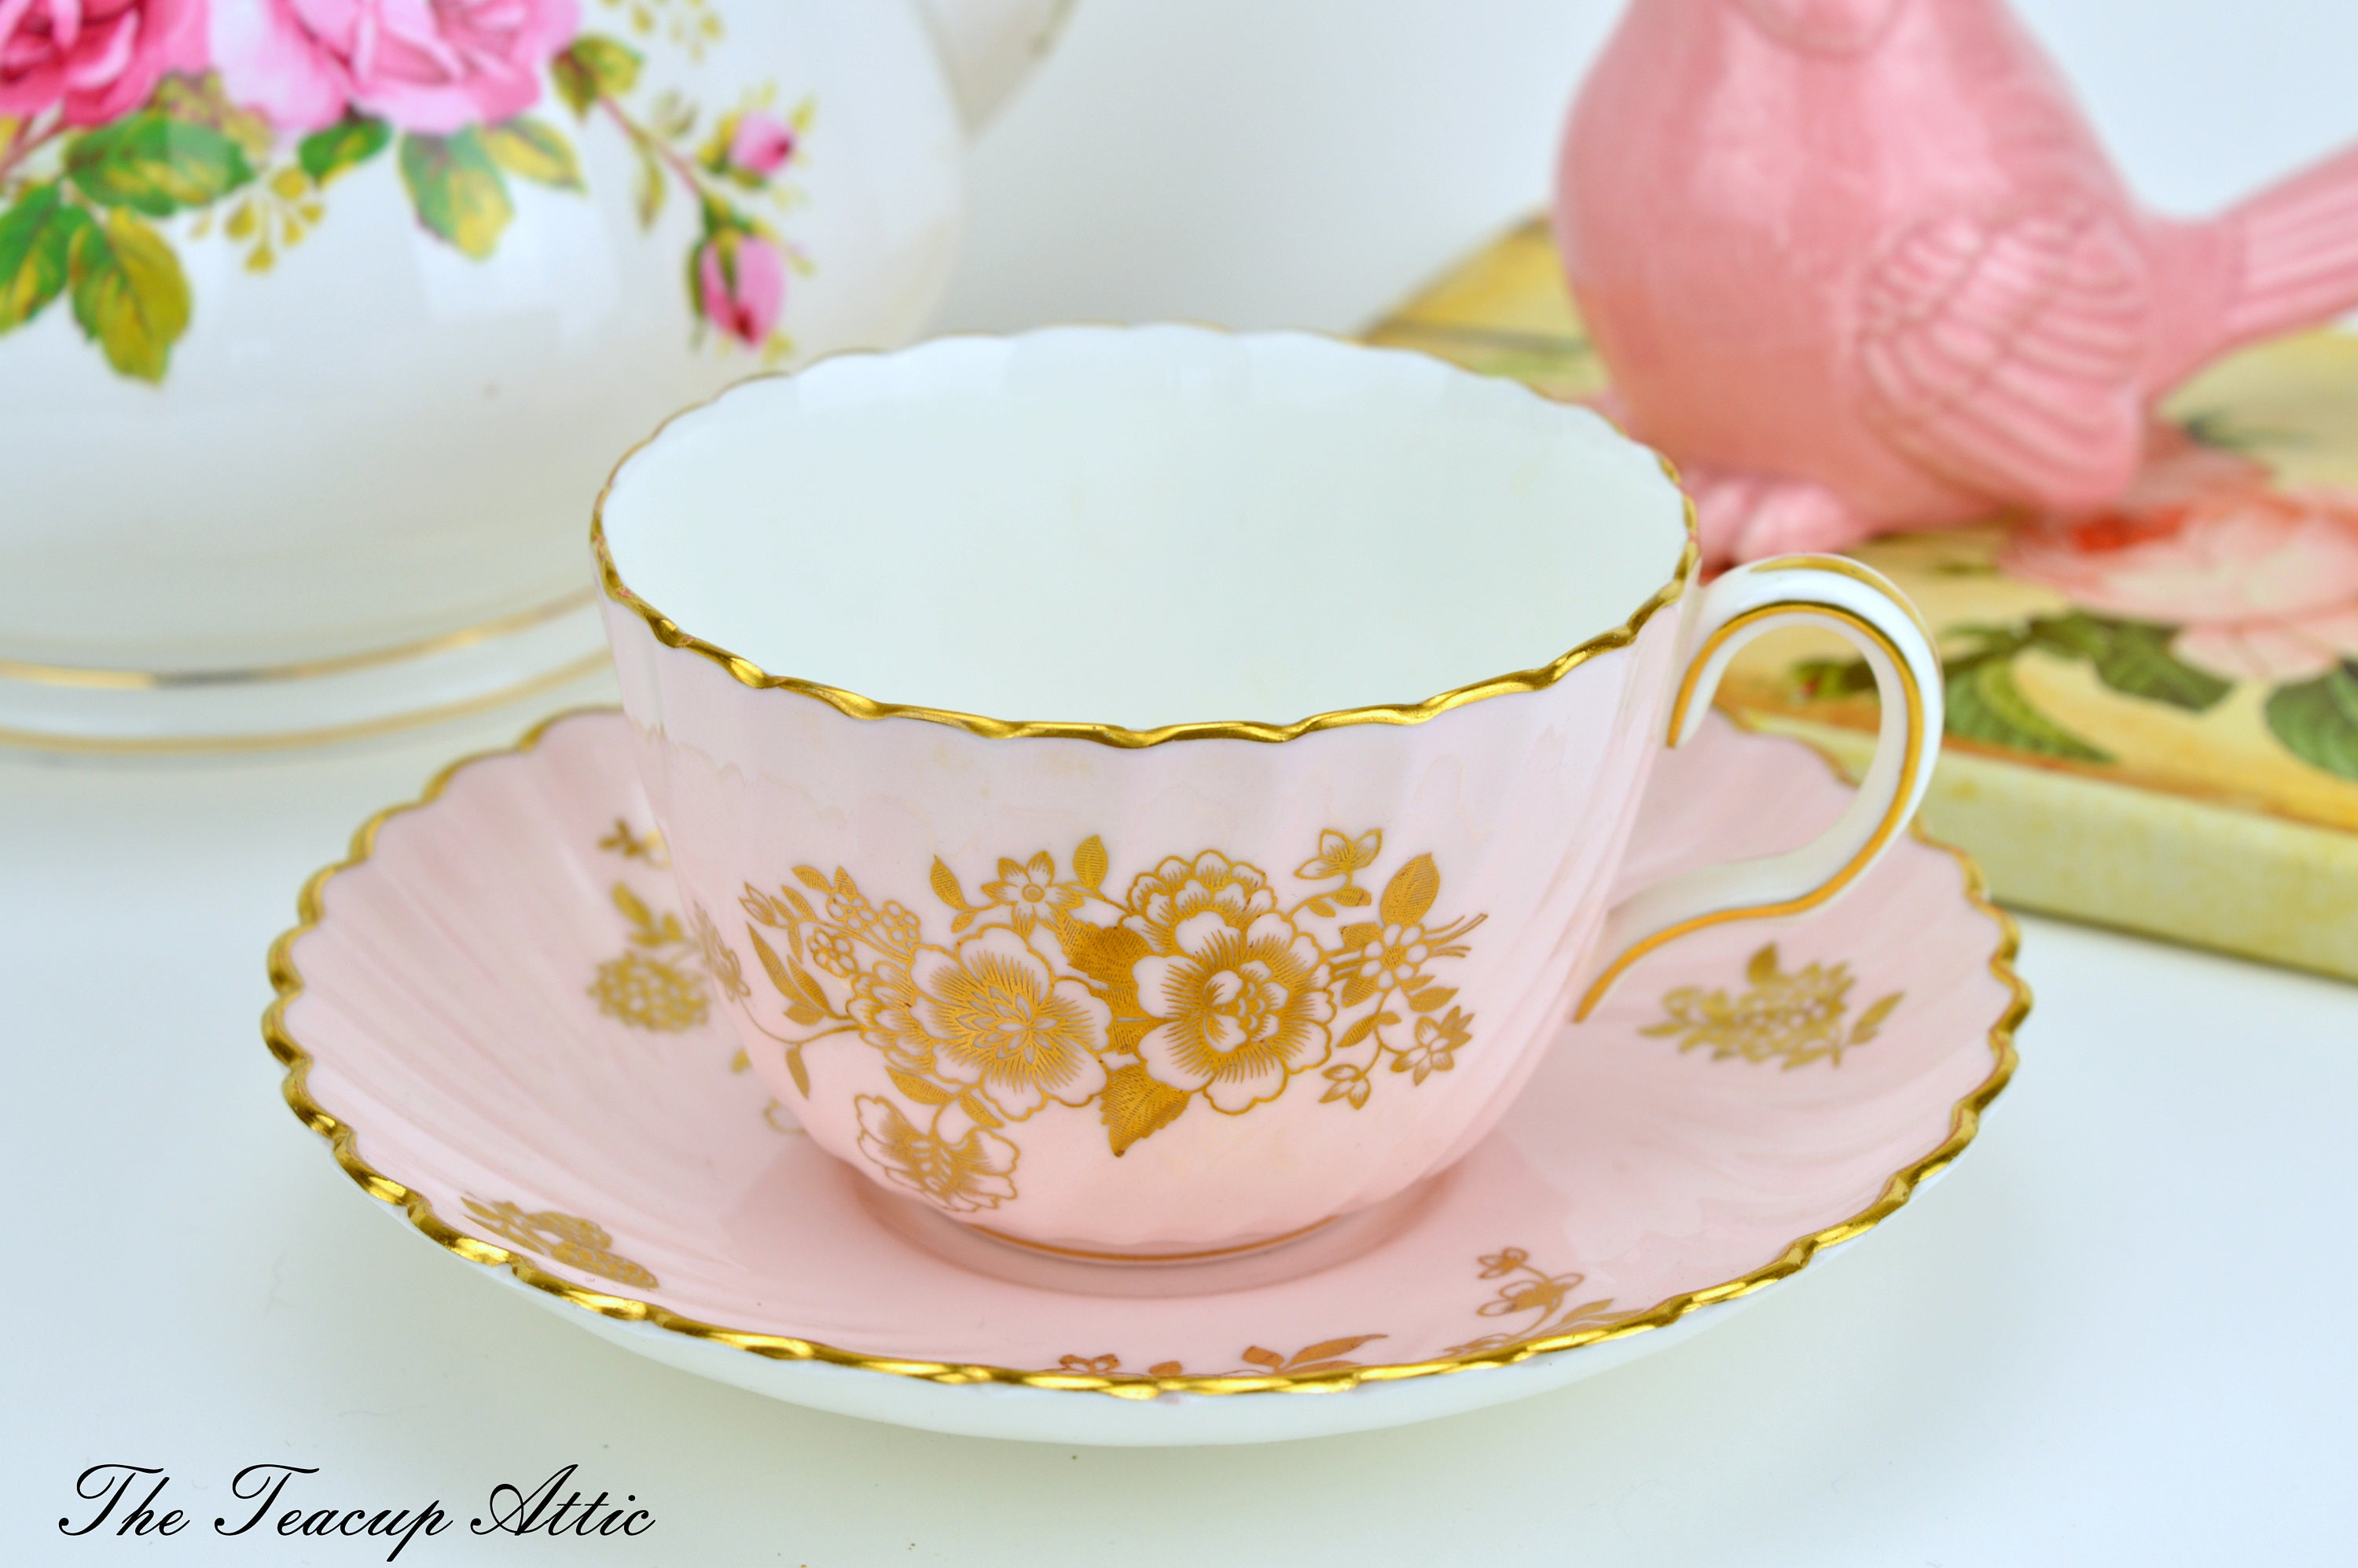 RESERVED FOR S Mintons Pink Swirl Teacup and Saucer With Golden Bouquet, Bone China Tea Cup And Saucer, Replacement China, ca. 1912-1950